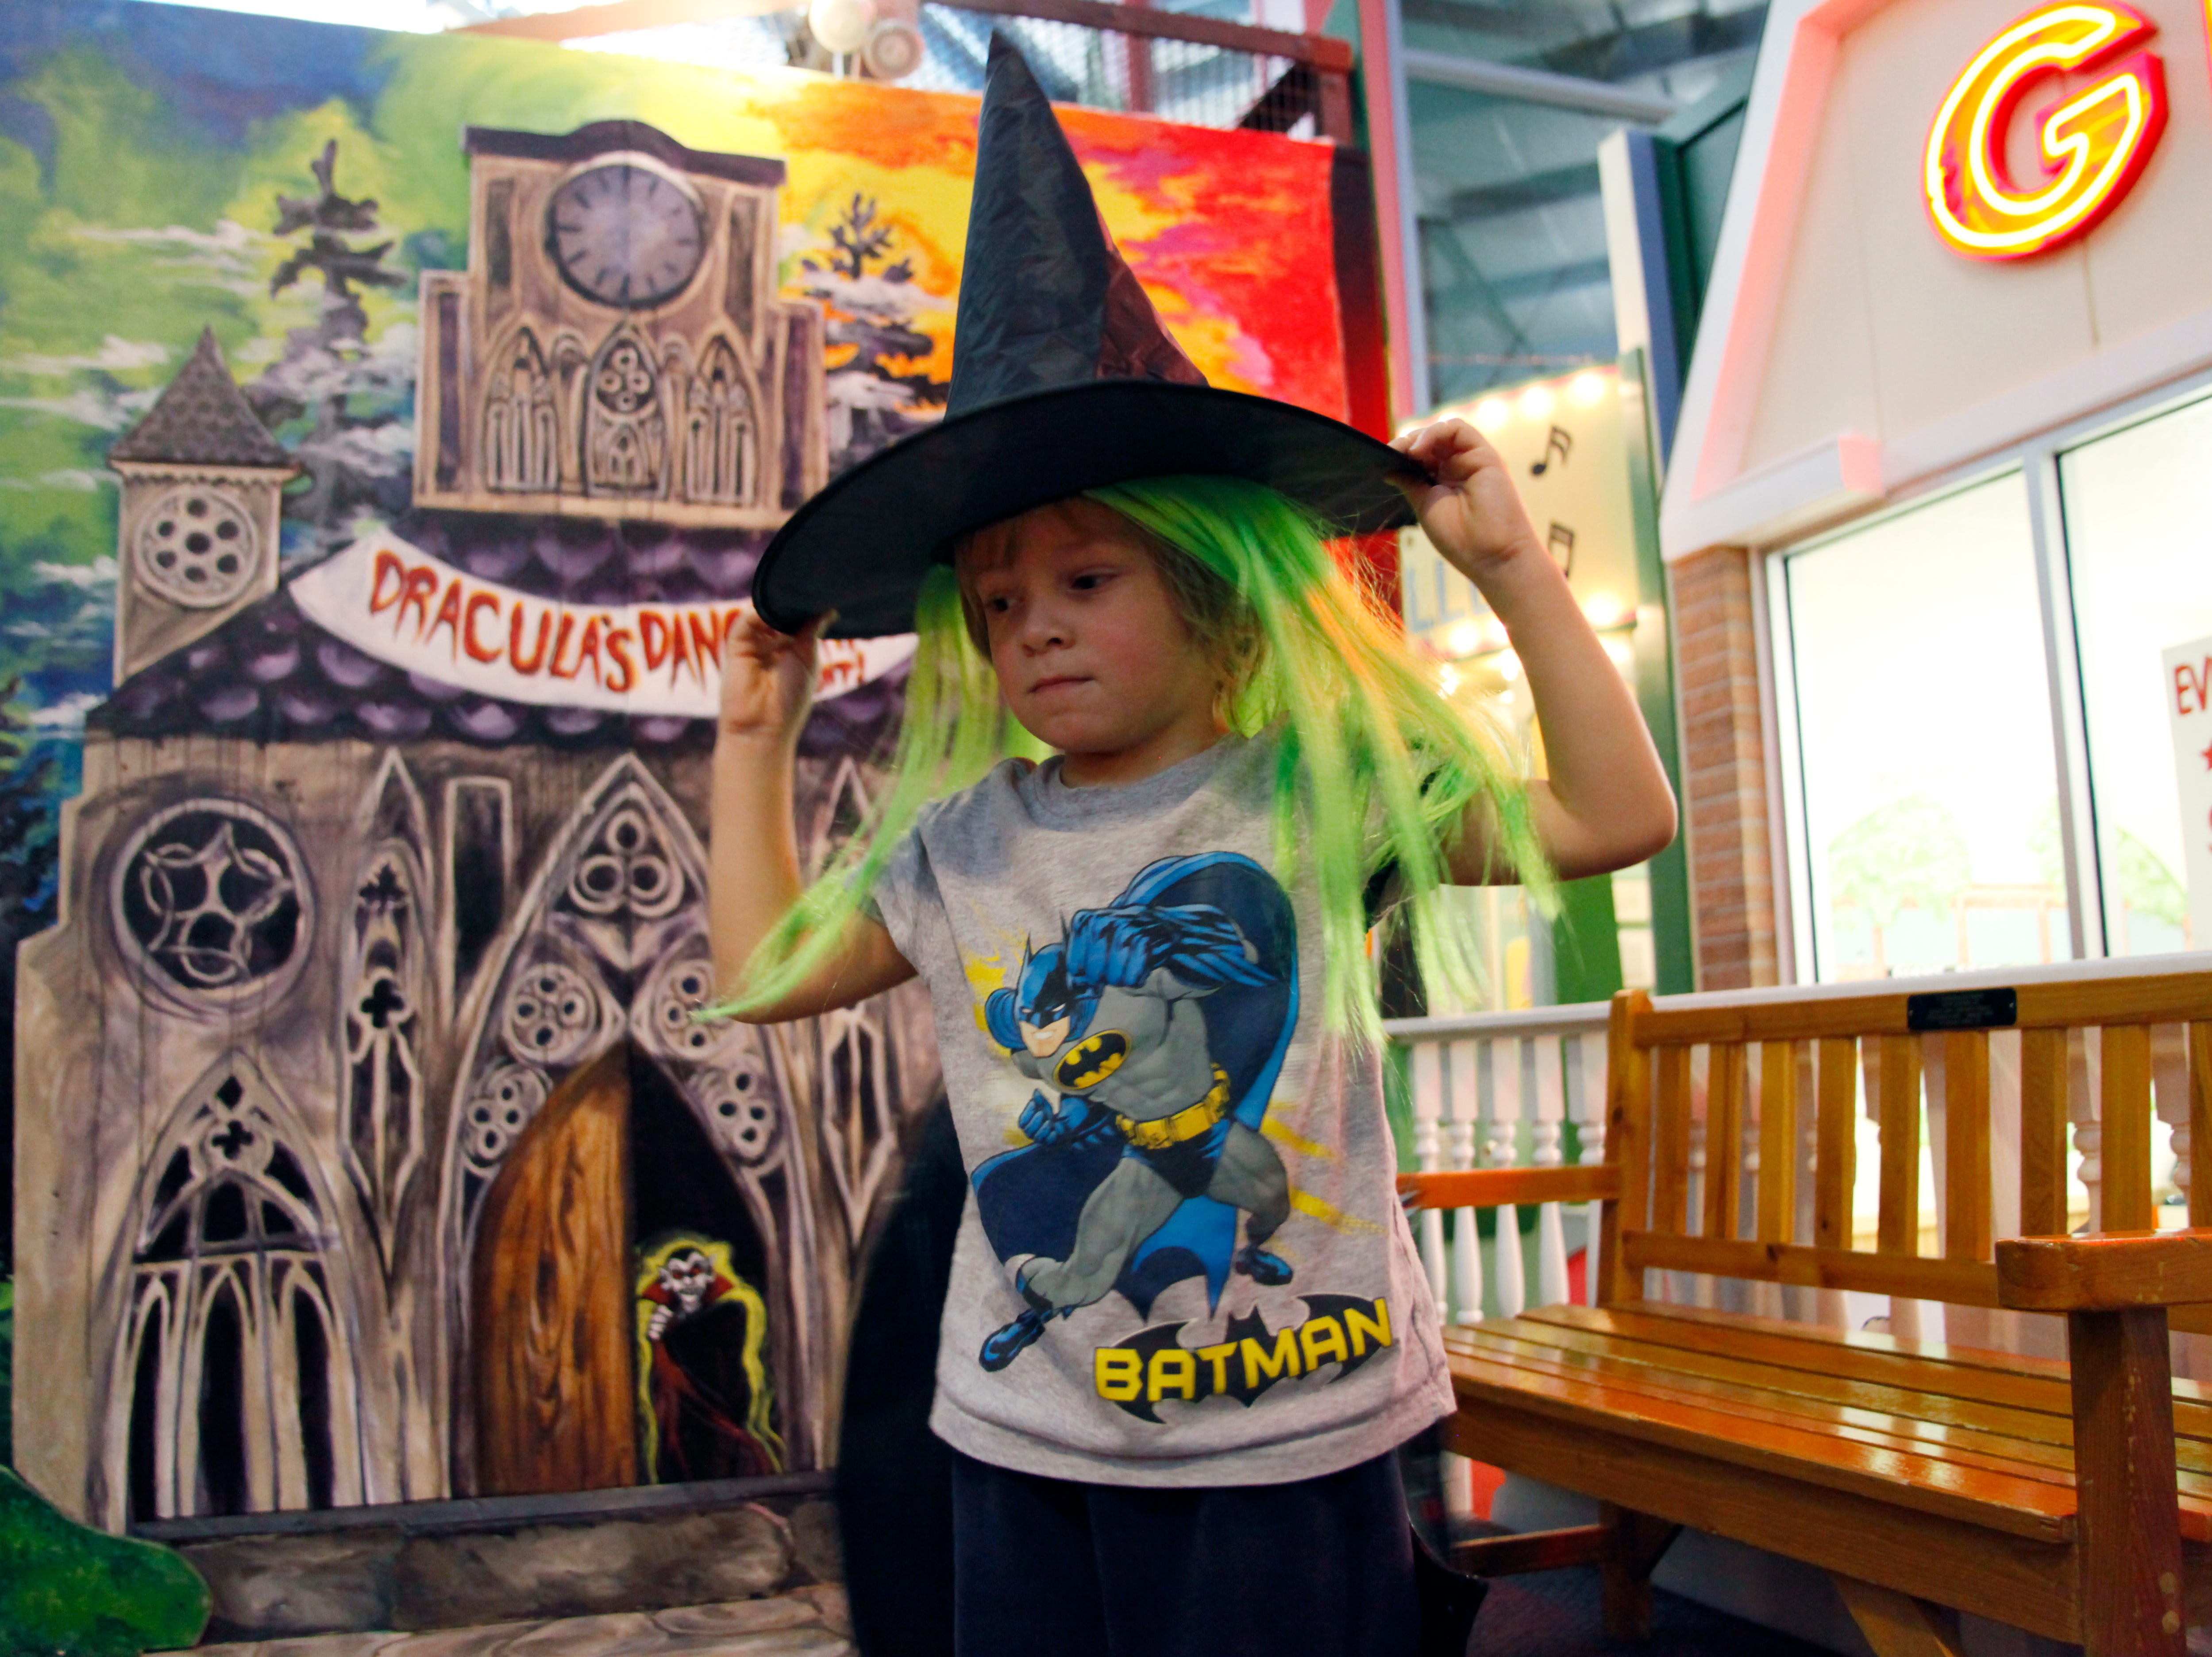 2011: Four-year-old Sawyer Benedict places a witch hat on his head at the Discovery Center on Tuesday afternoon in Binghamton. The Discovery Center has created a large Halloween display that opened on October 1st and supports a whimsical theme catering to children of young ages.